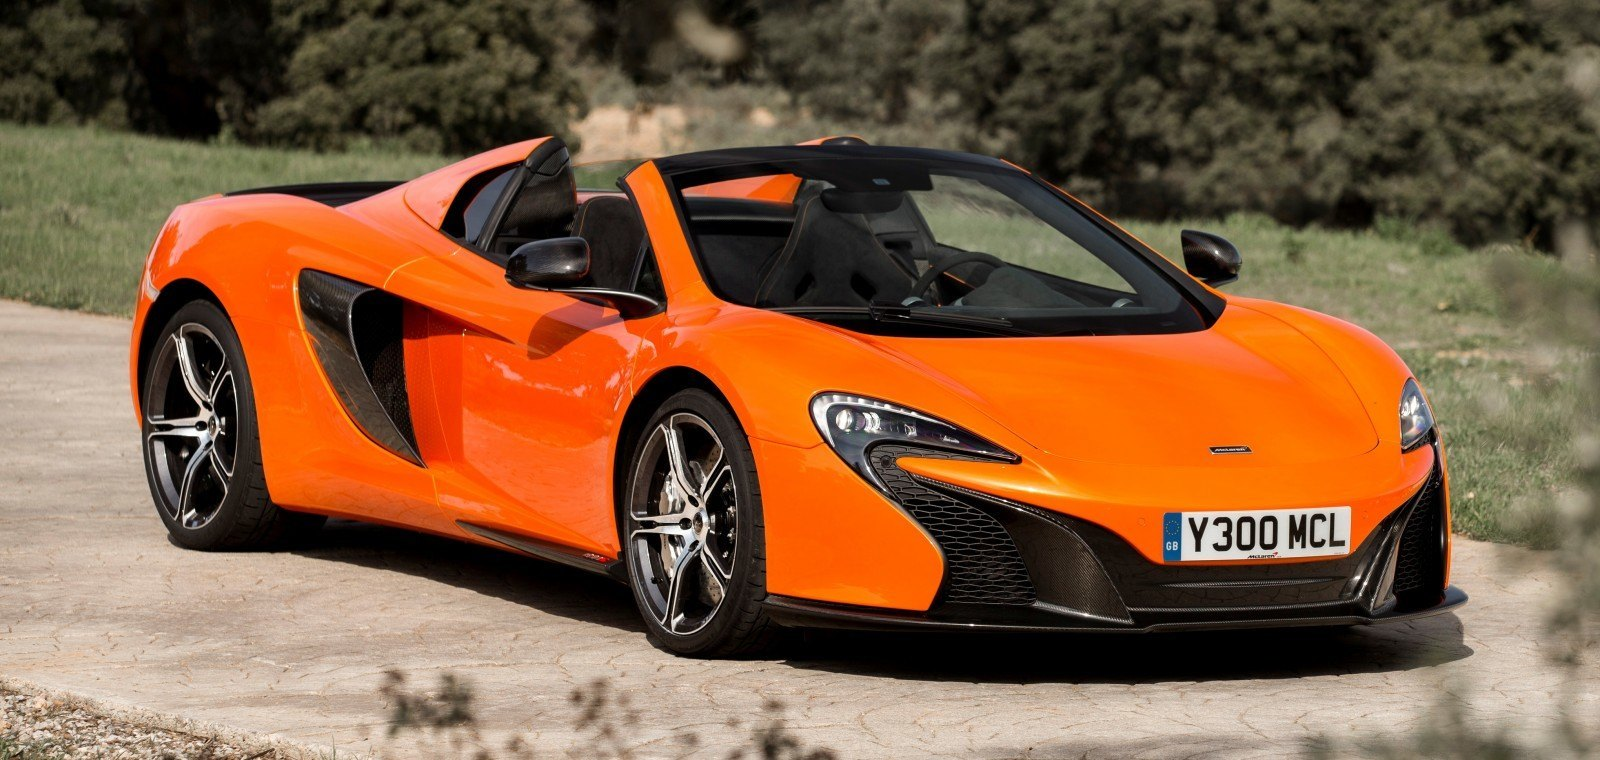 2014 mclaren 650s spider buyers guide color visualizer and build out in mantis green. Black Bedroom Furniture Sets. Home Design Ideas